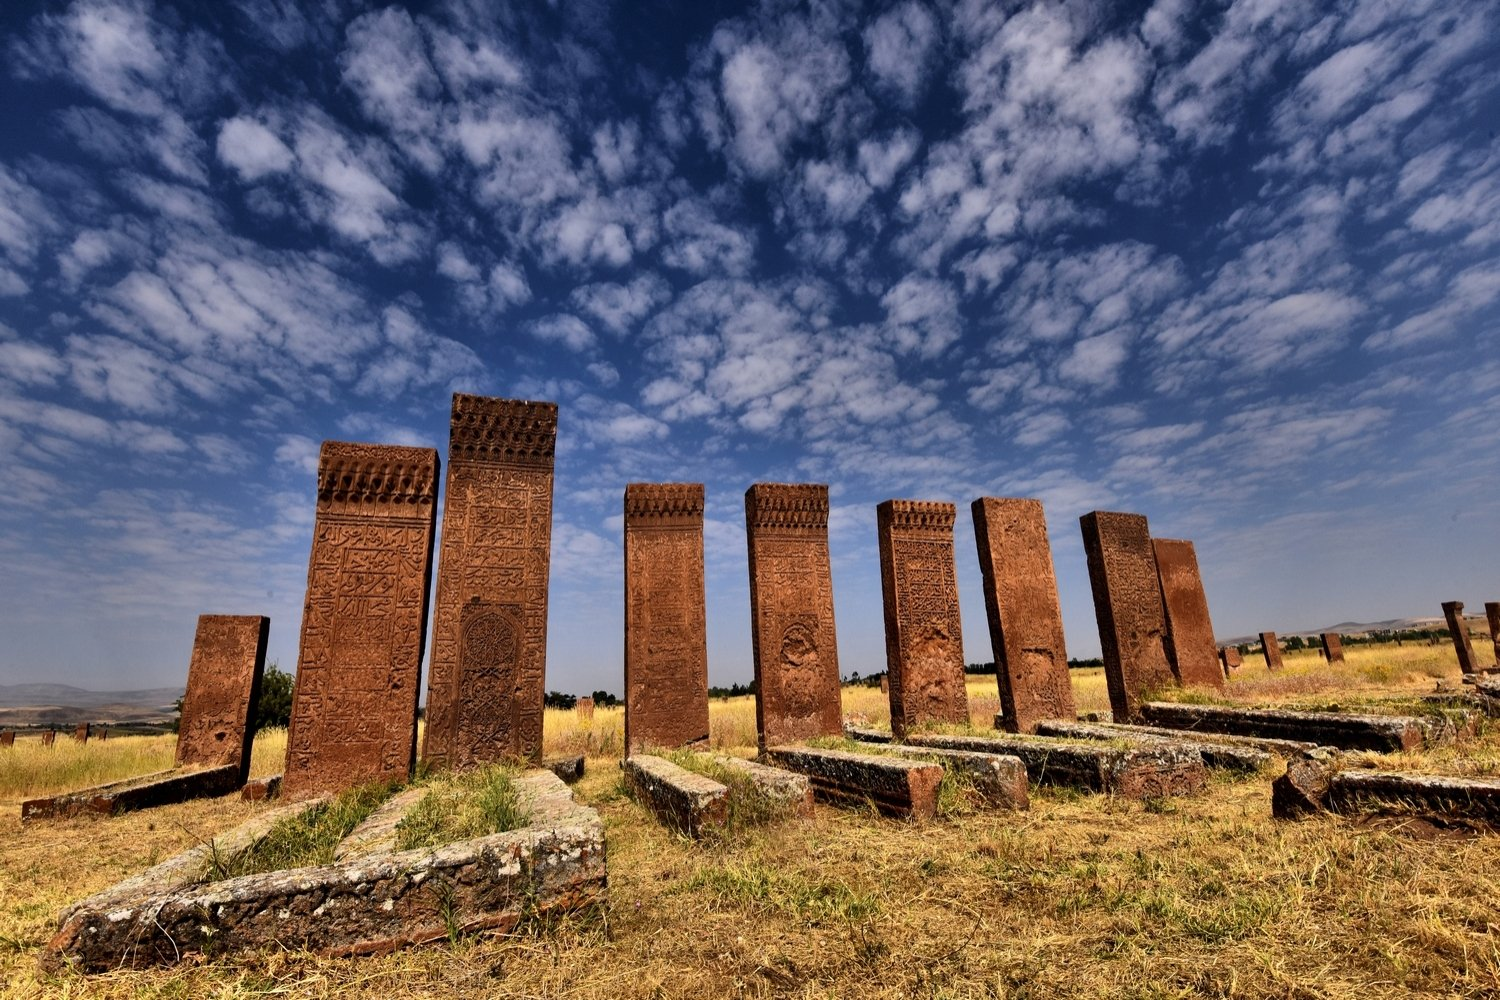 Some tombstones at the Ahlat Seljuk Meydan Cemetery, Bitlis, eastern Turkey. (Courtesy of Ministry of Culture and Tourism)